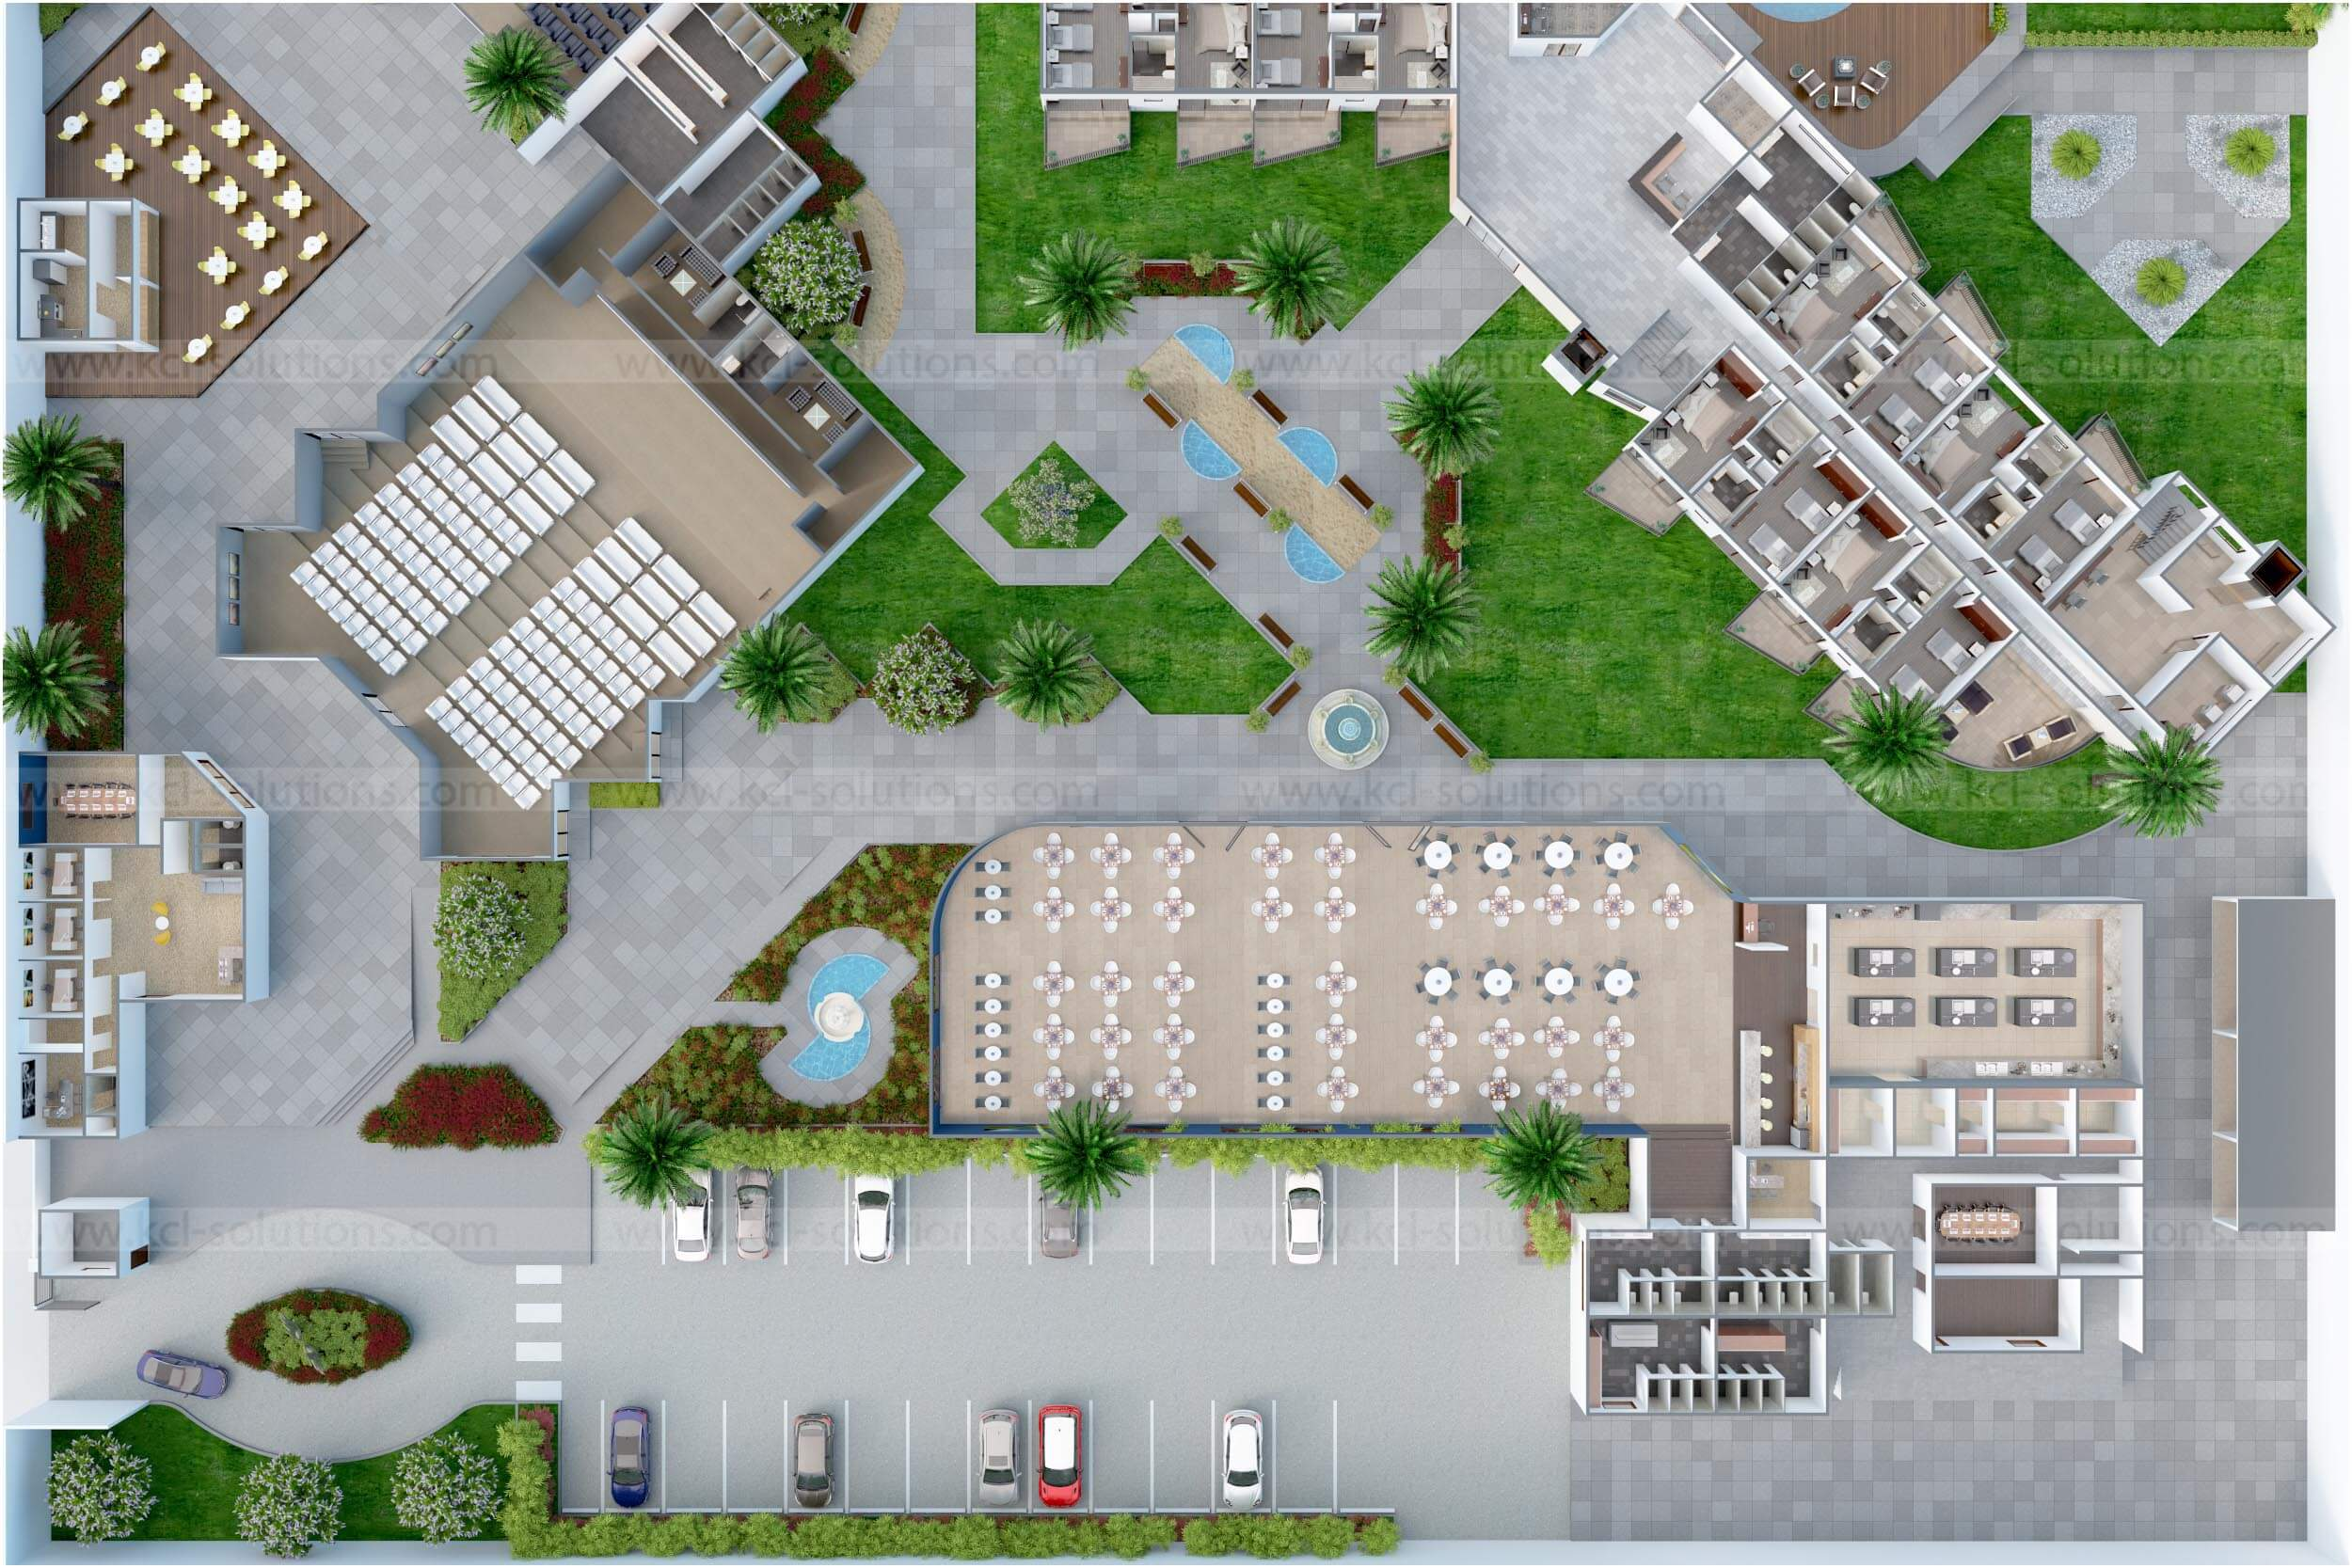 3d Amenities Plan Design